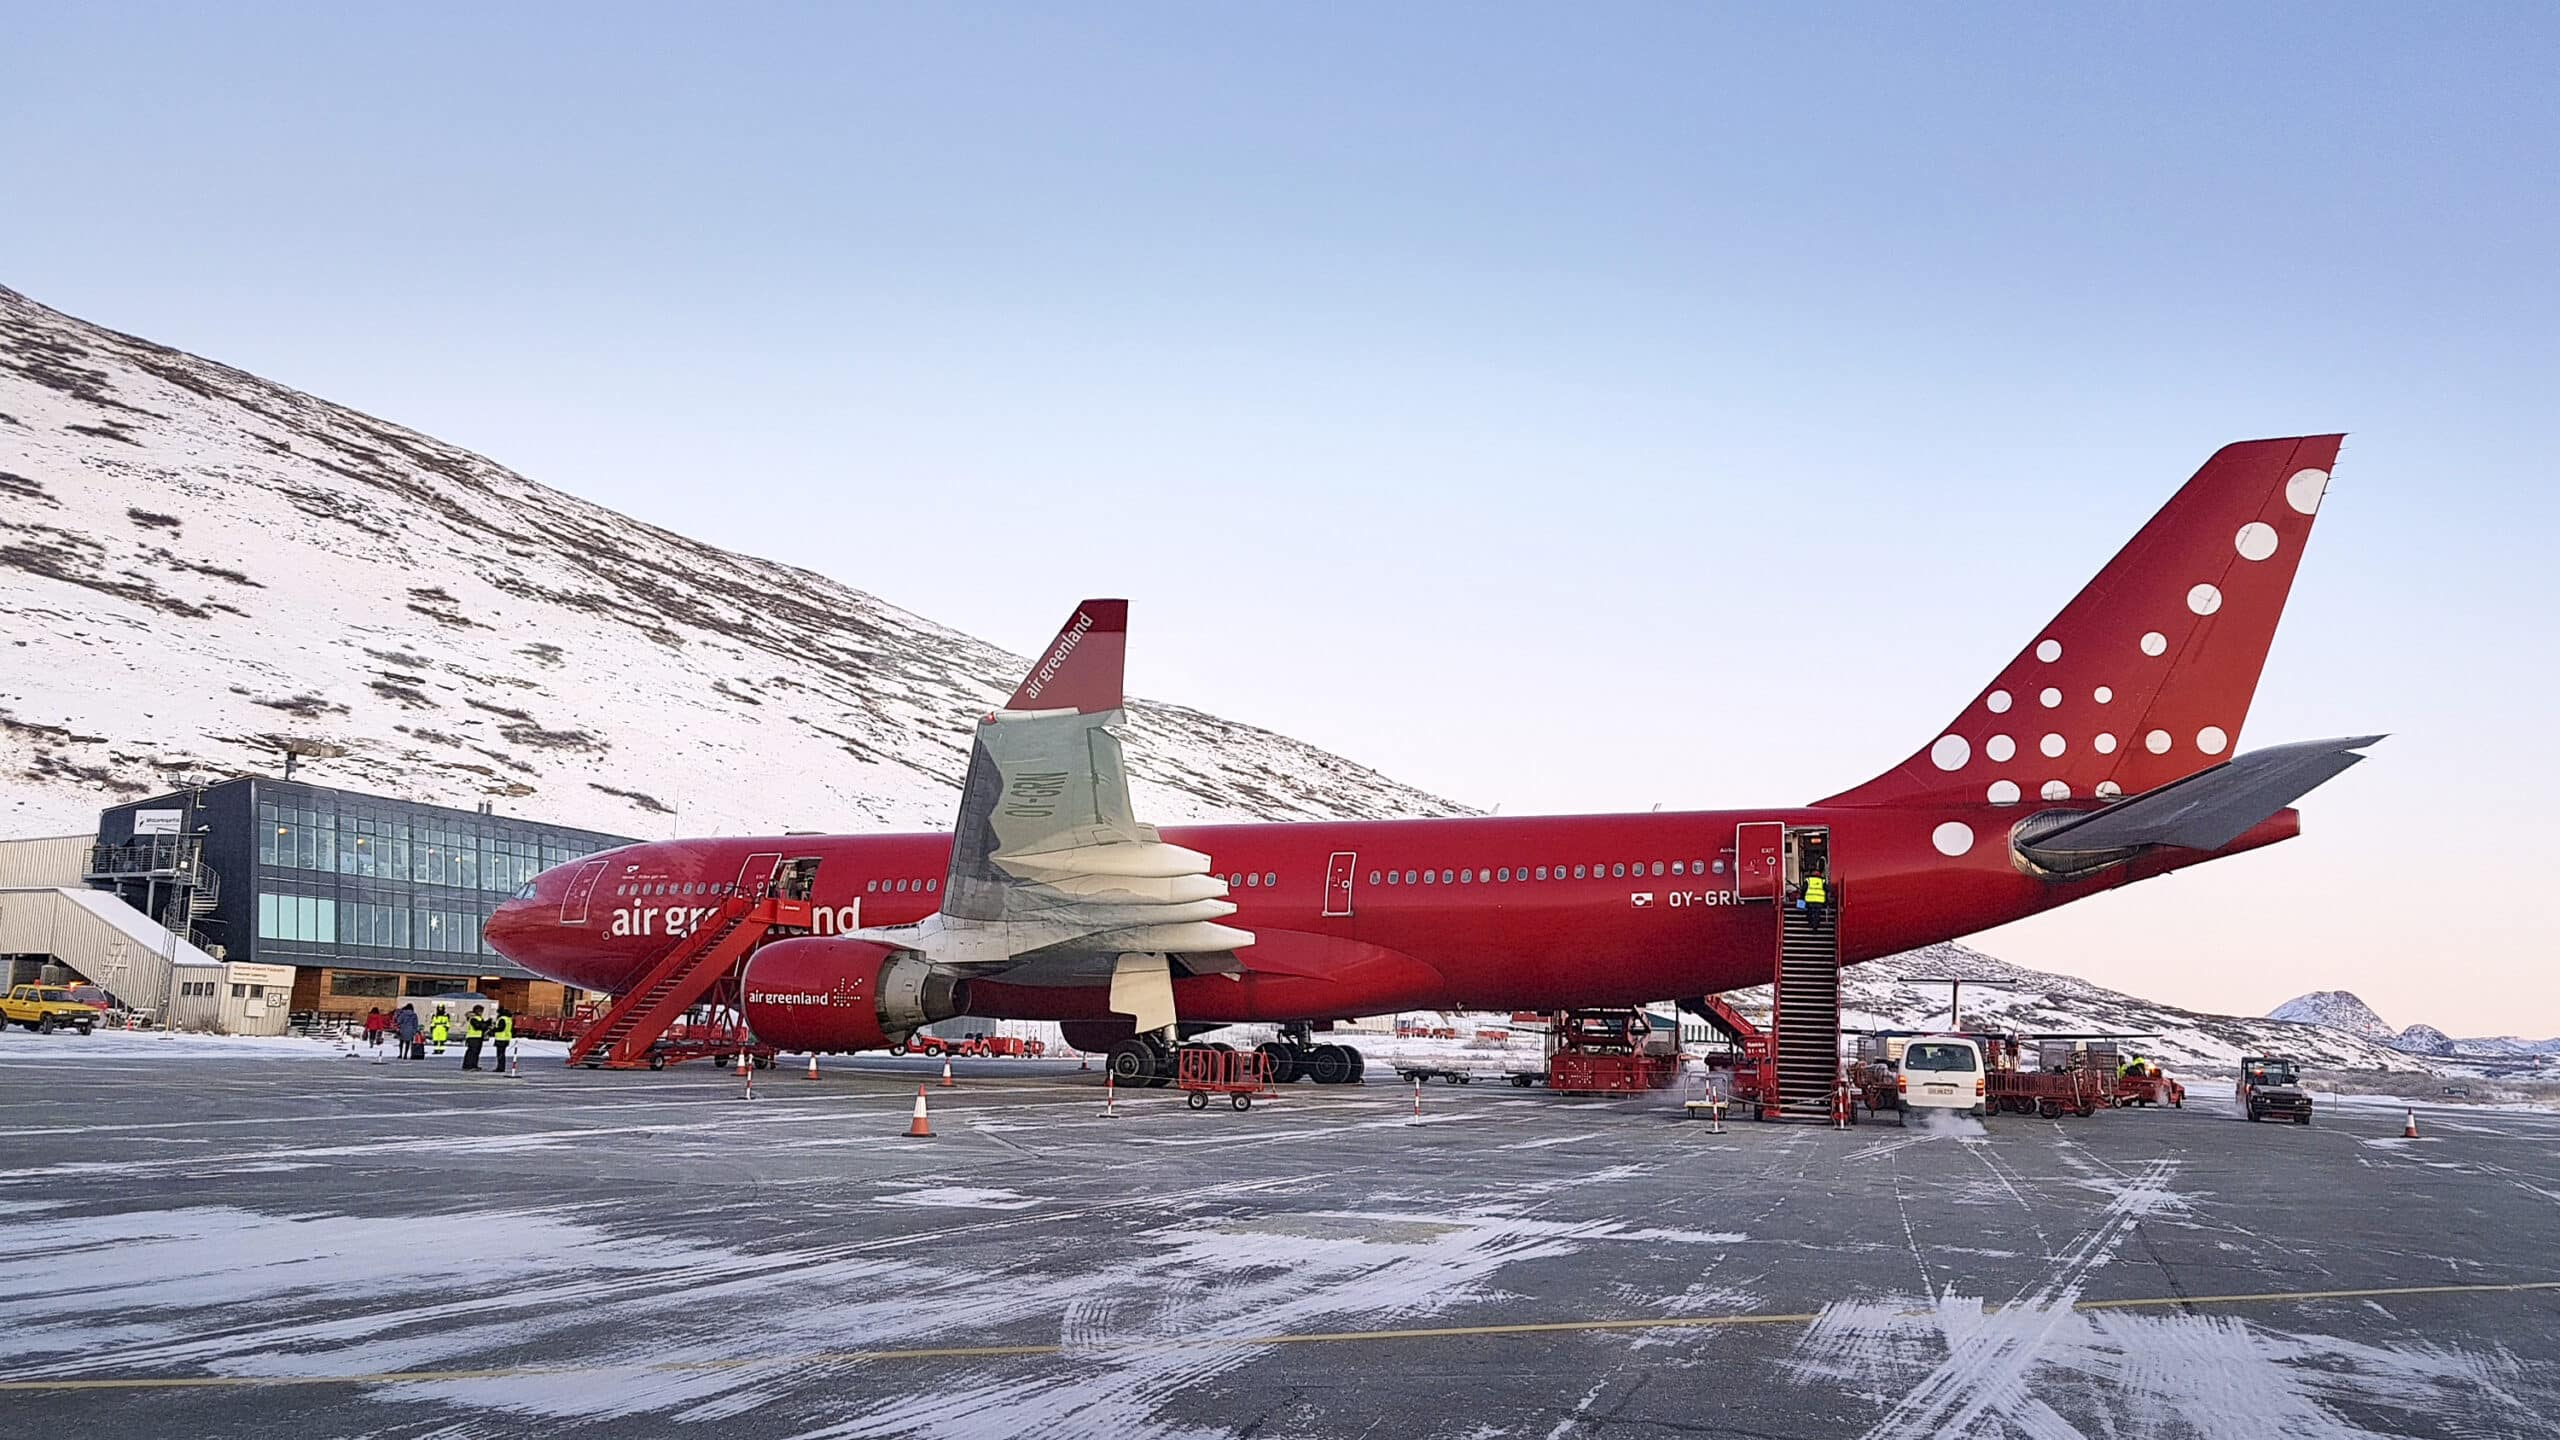 Covid-19 – Greenland is open!